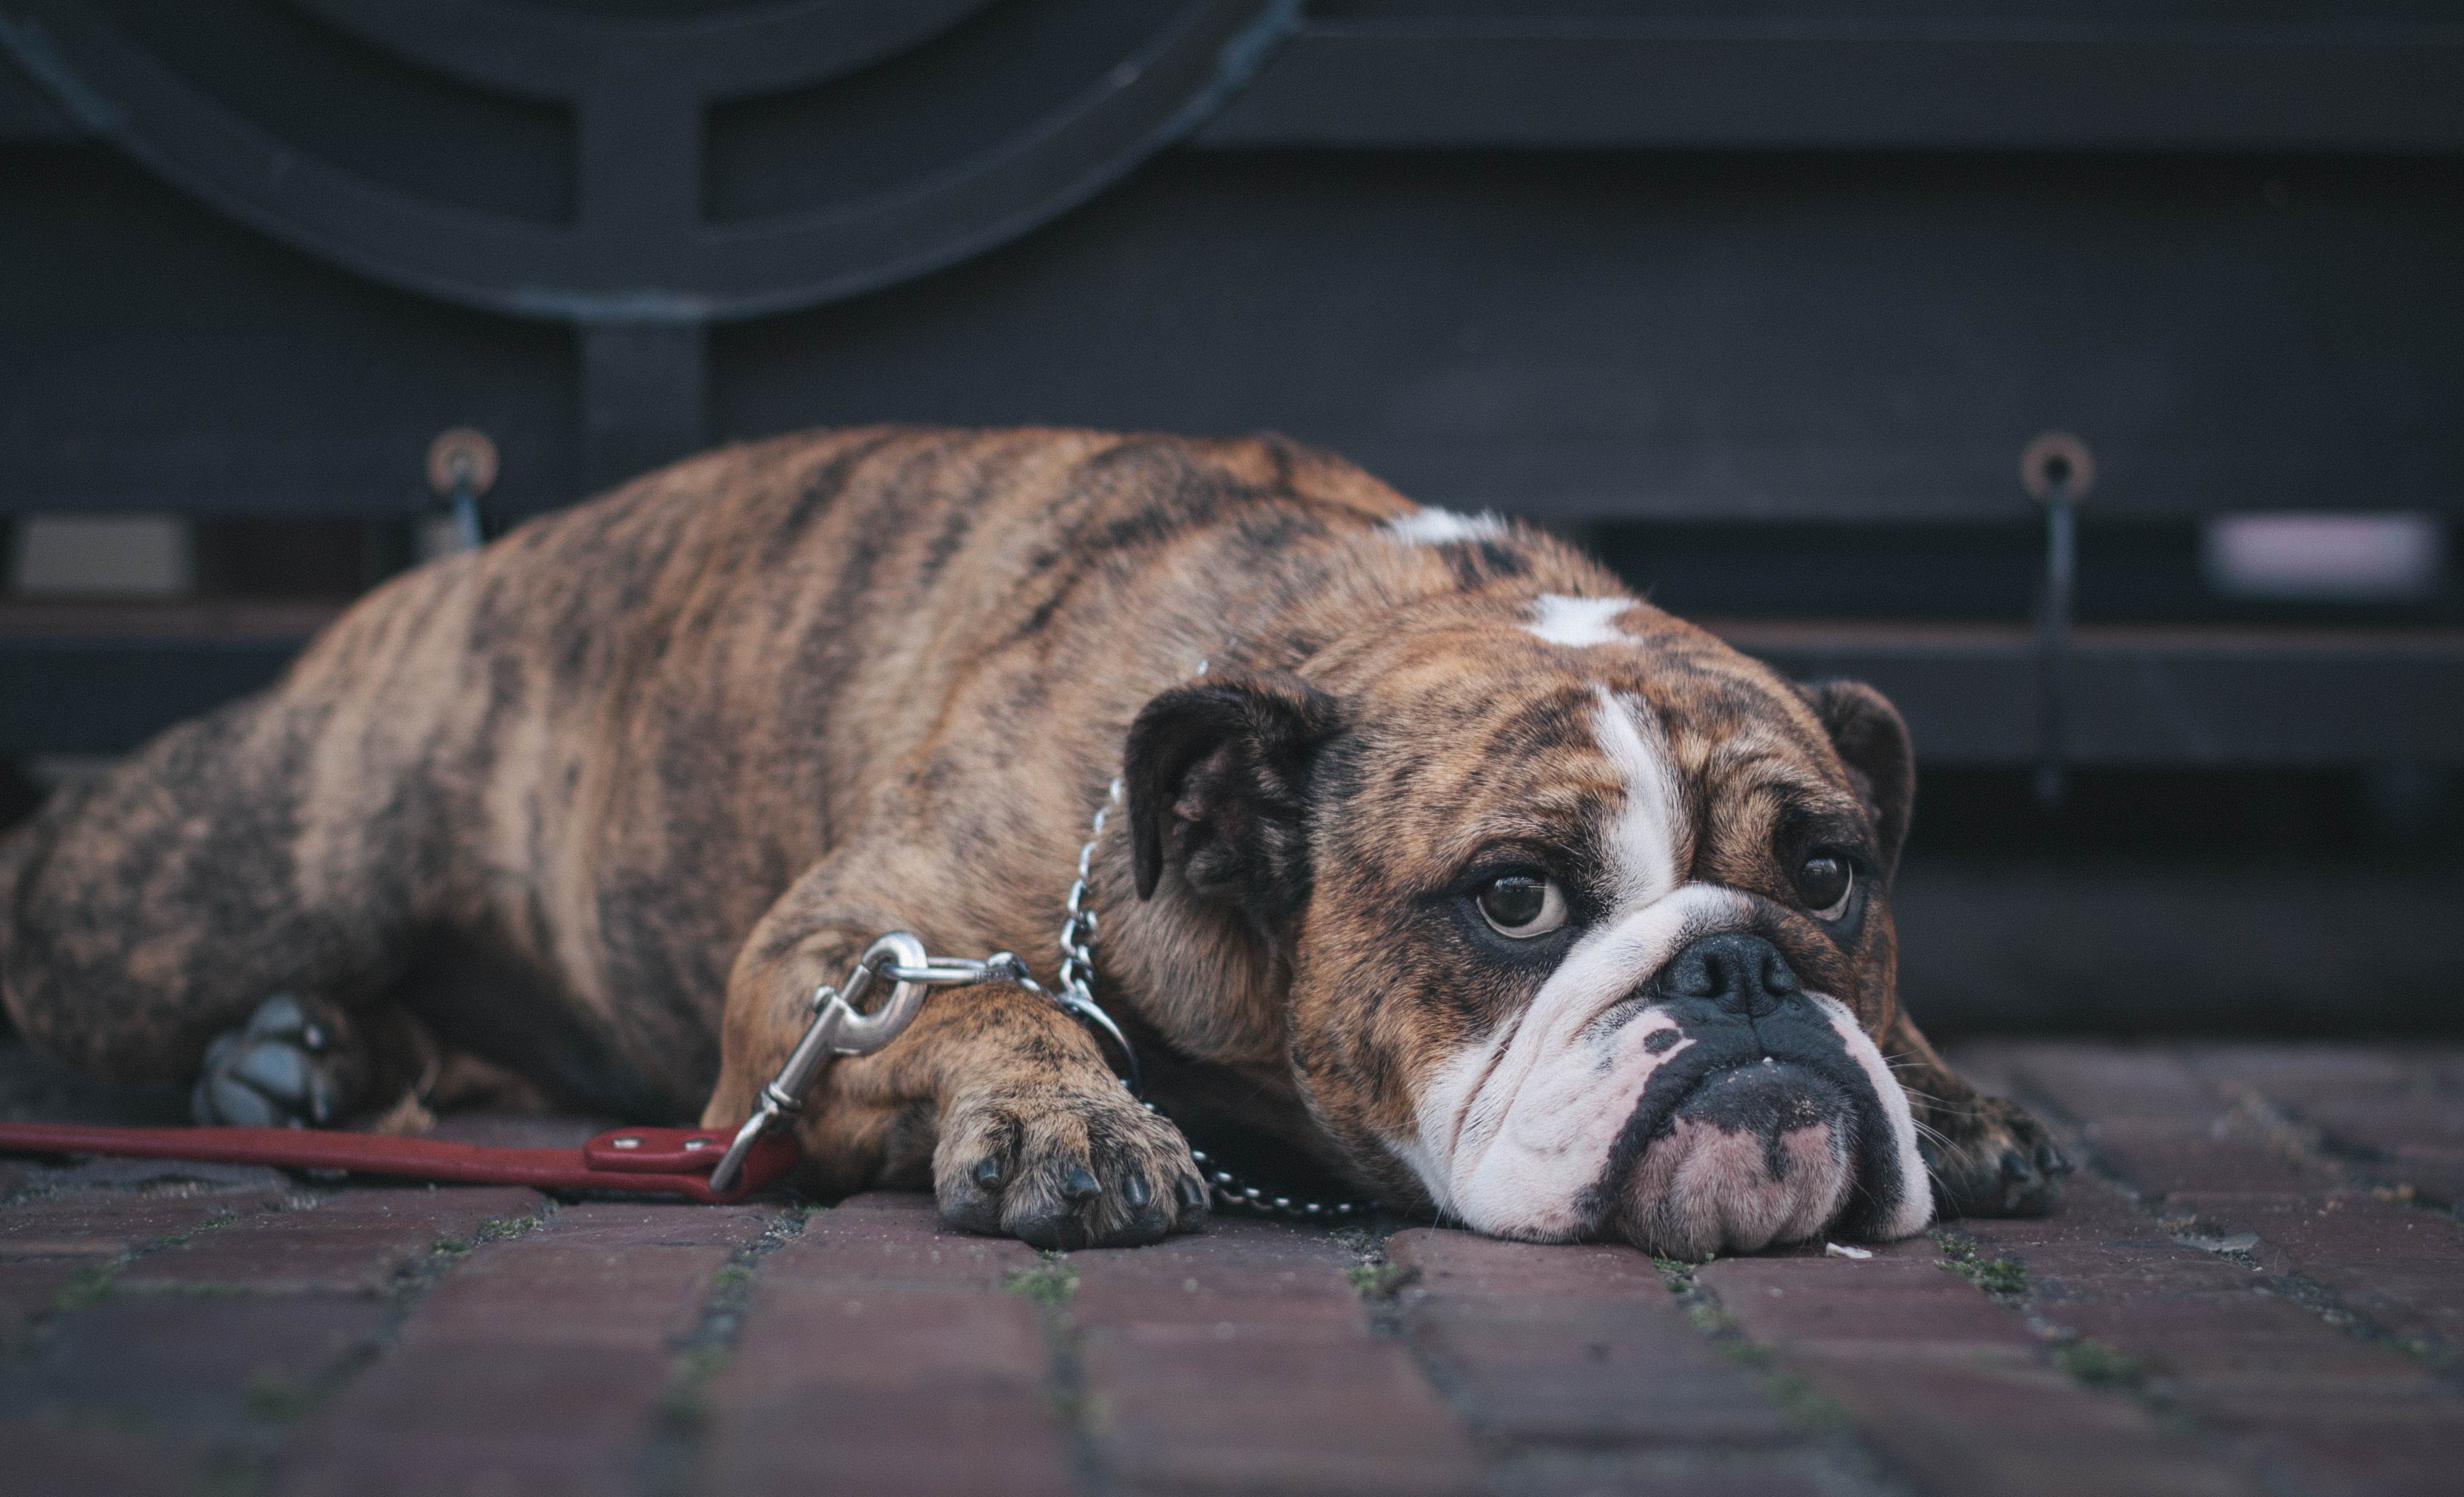 How can I tell if my dog is overweight?